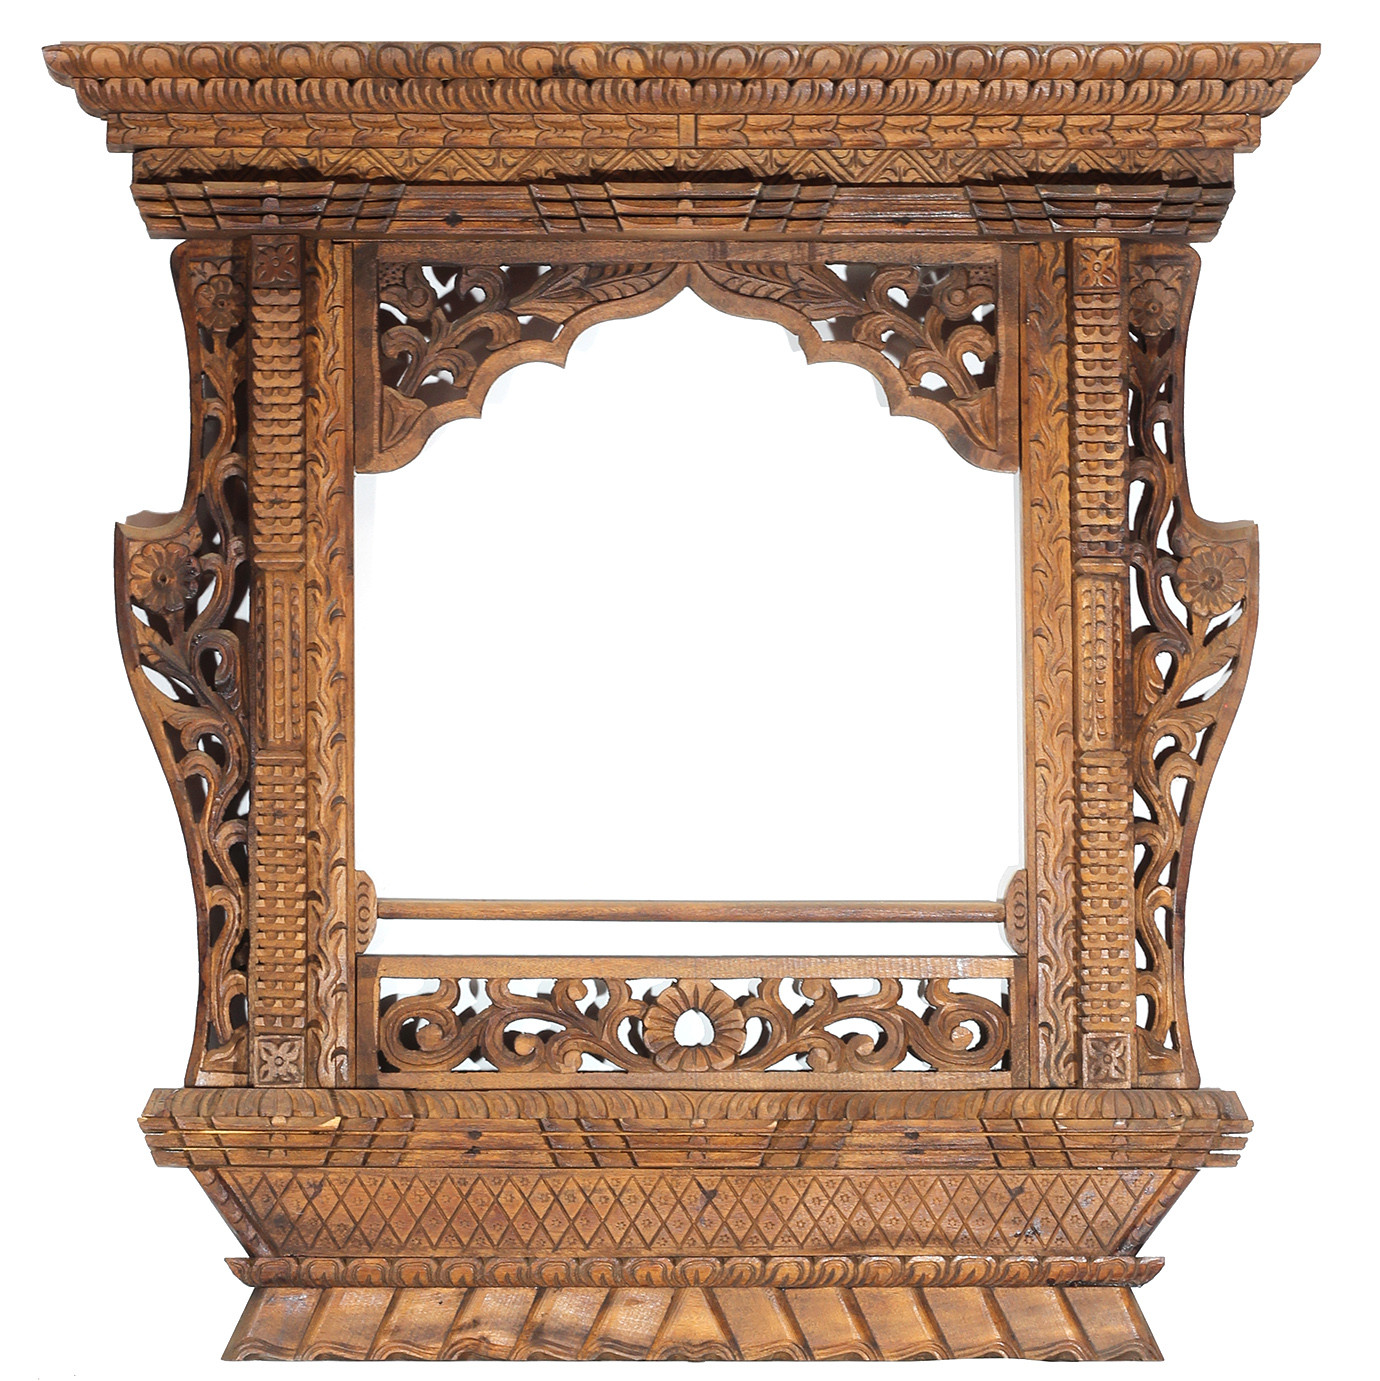 Carved Wood Window Ideas Traditionally Crafted Window Frame Wood Carvings Nepal